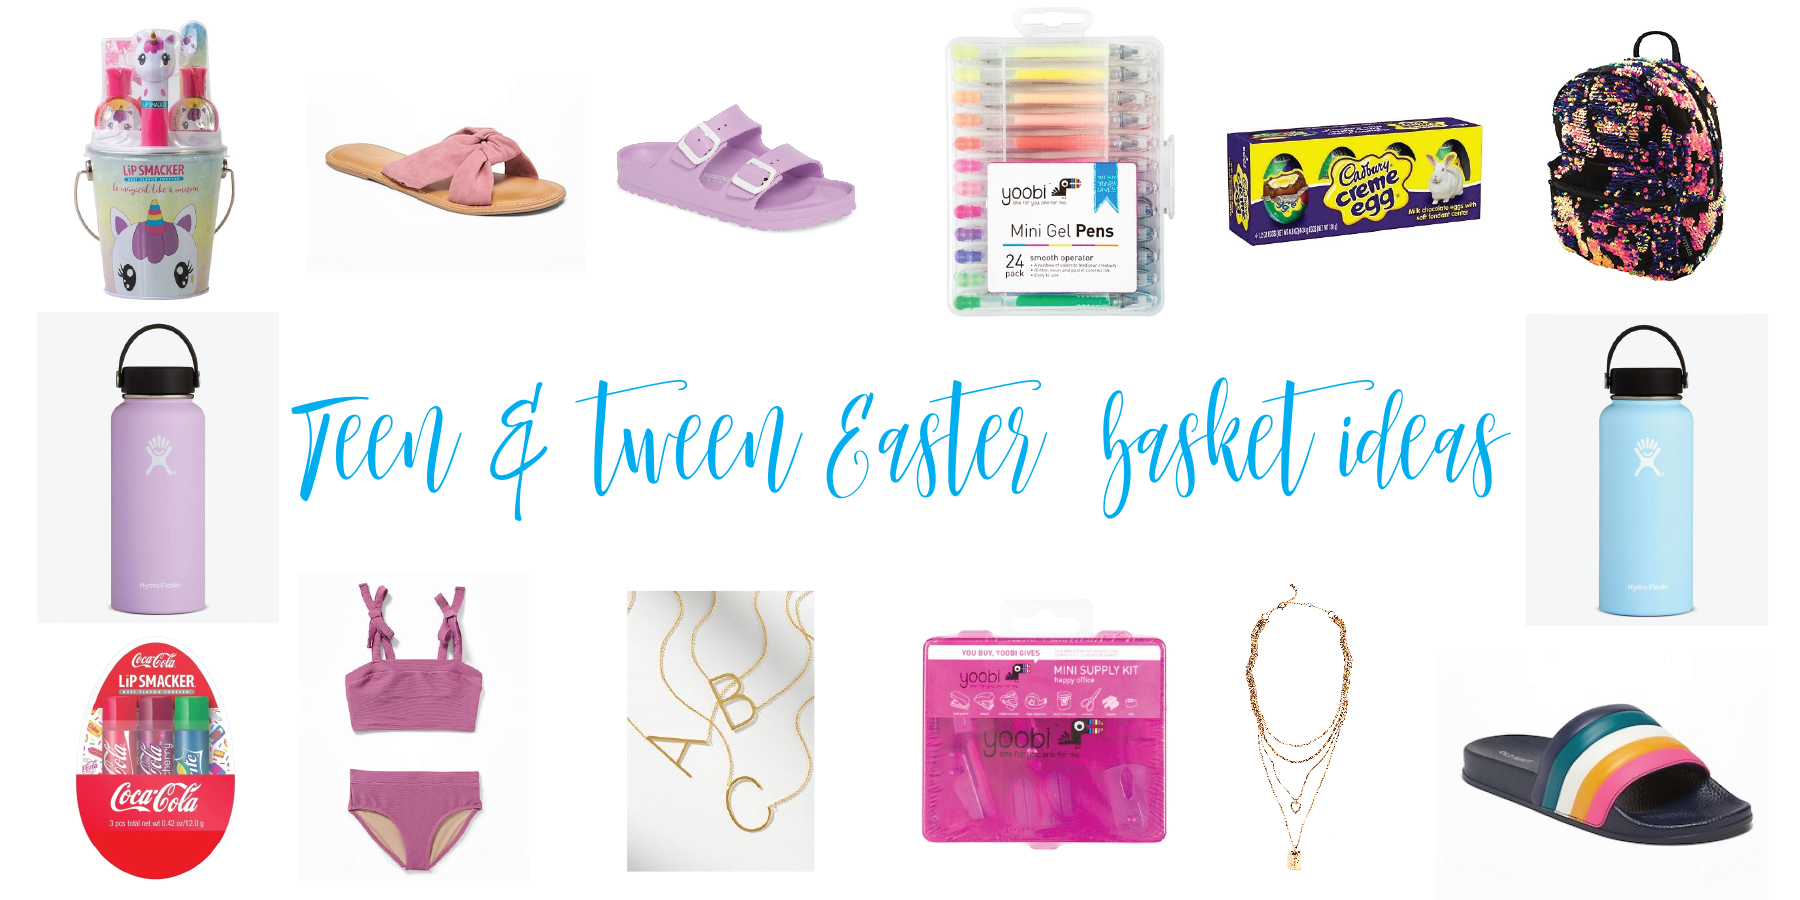 Tween & Teen Easter Basket Ideas